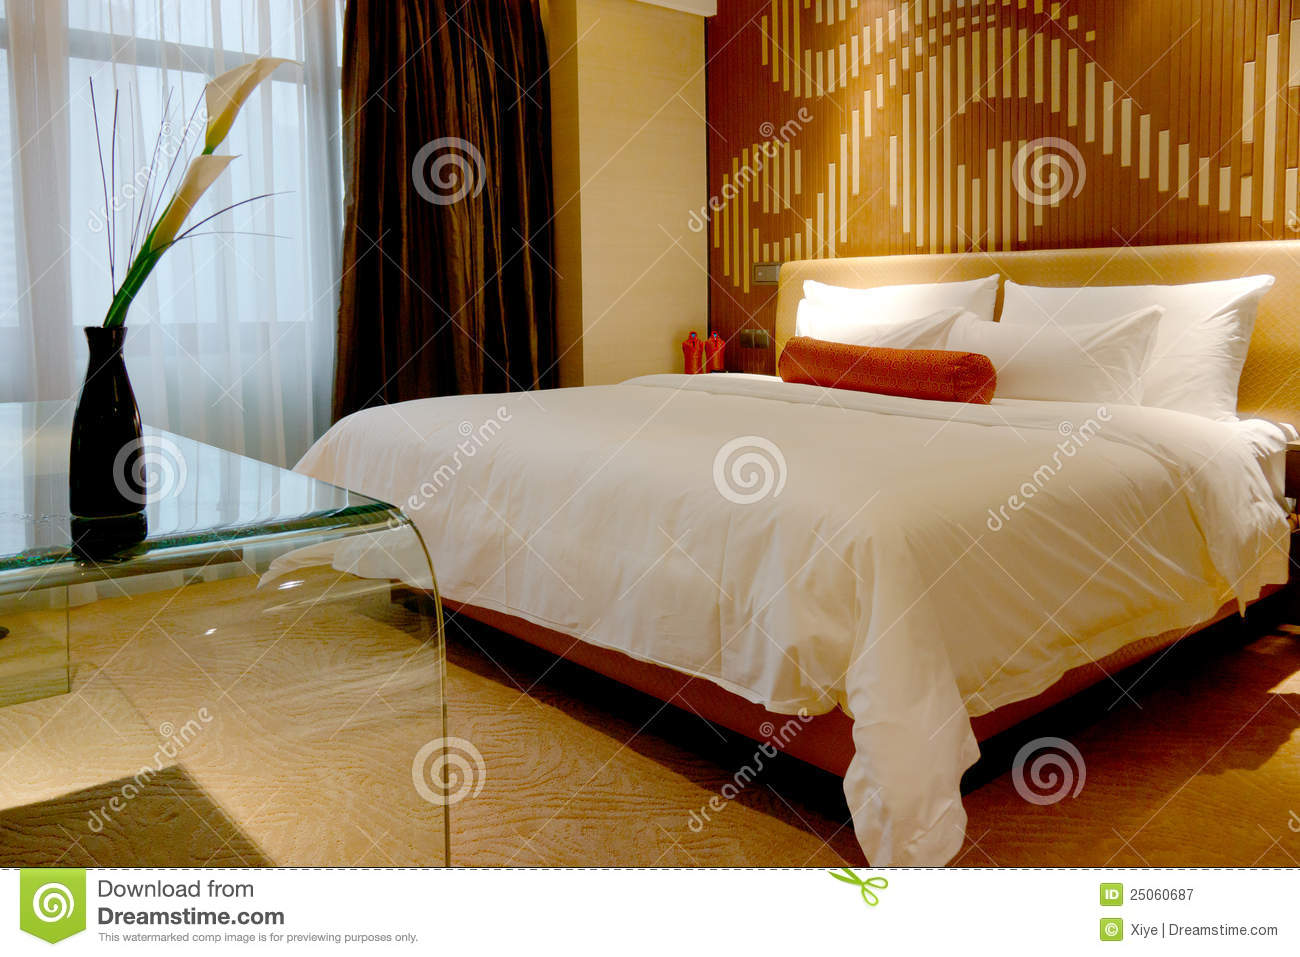 Bedroom of hotel